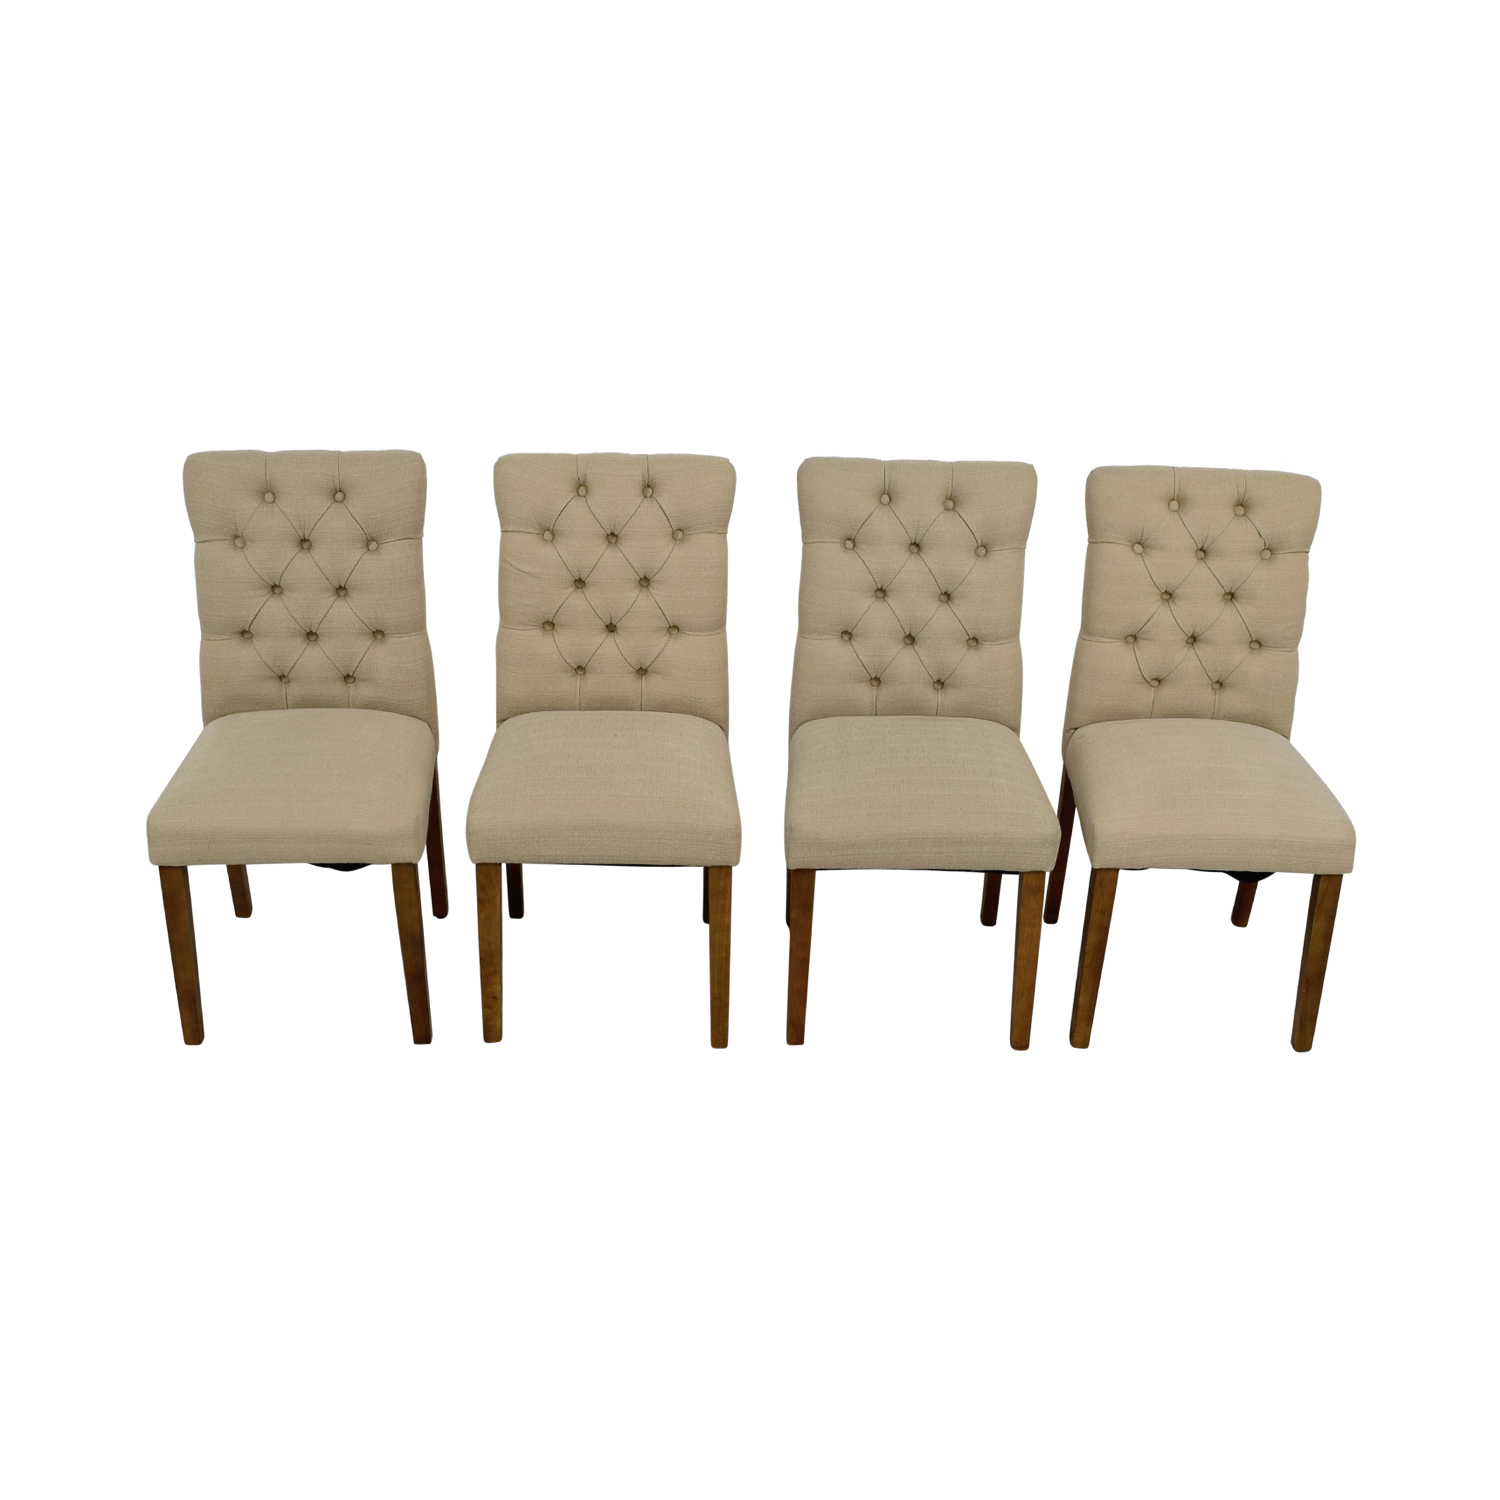 67 Off Target Target Brookline Threshold Tan Tufted Dining Chairs